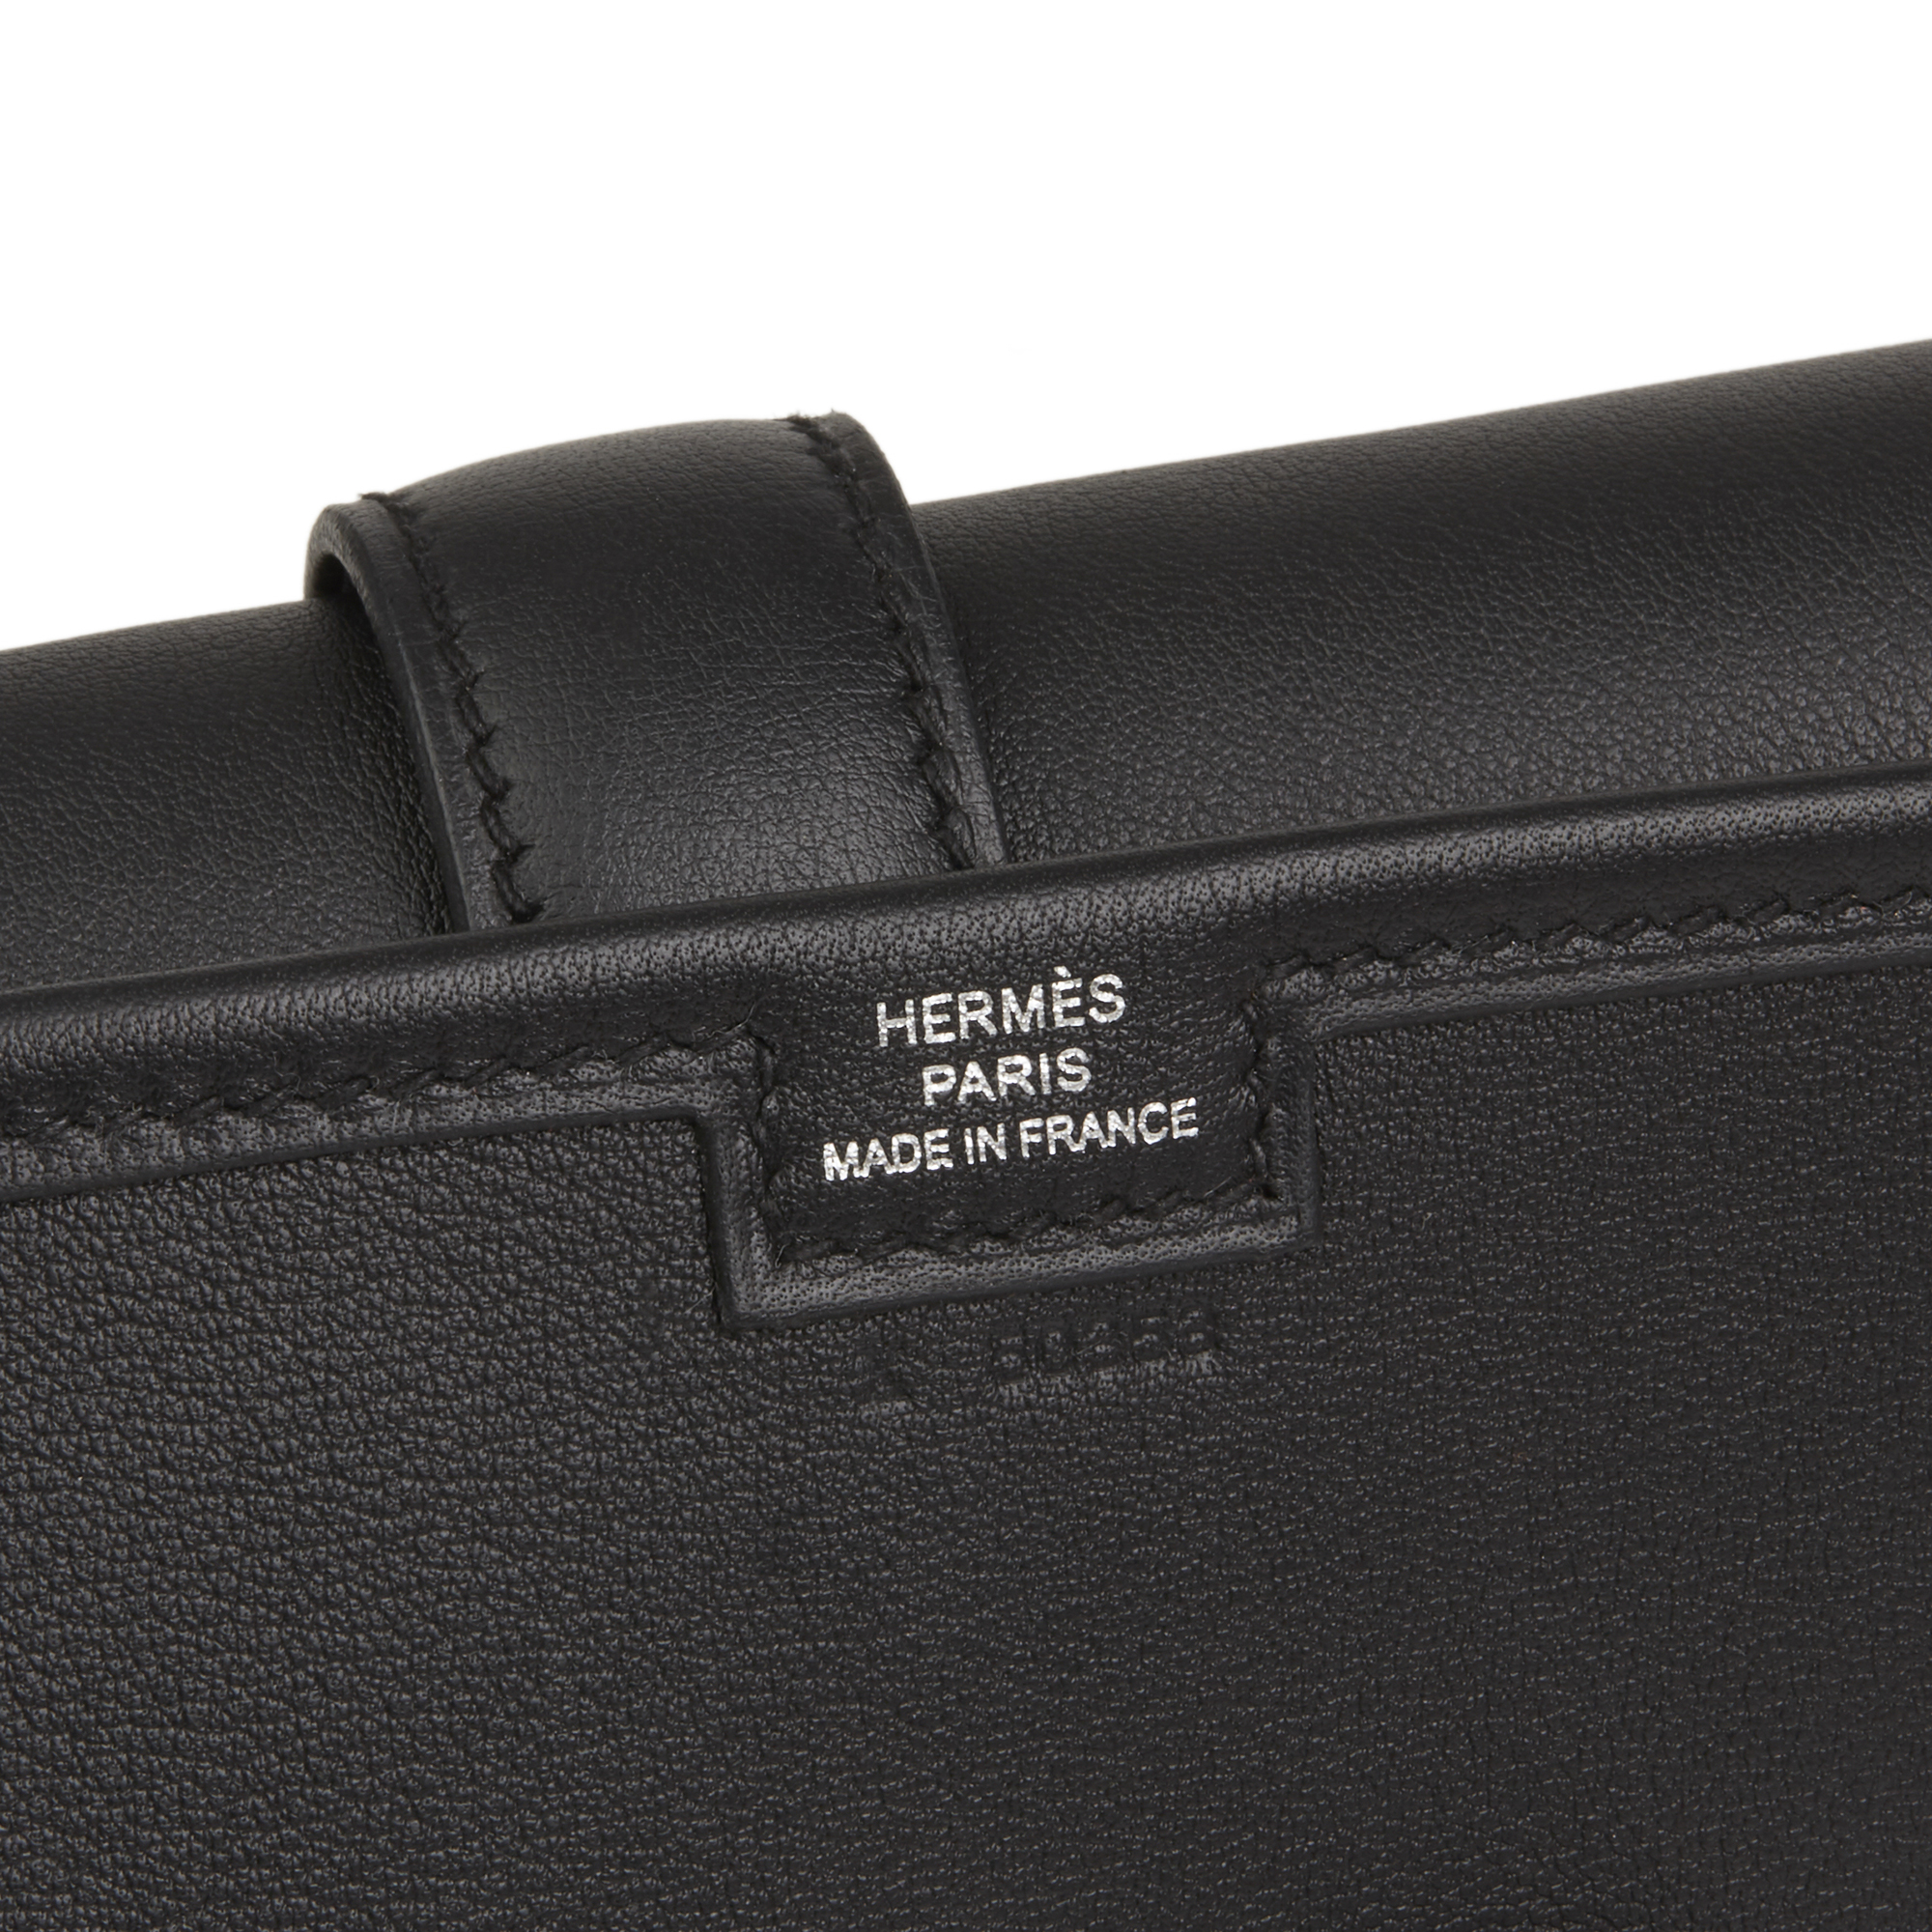 08db7b57d319 HERMÈS BLACK SWIFT LEATHER JIGE ELAN 29 HB2540